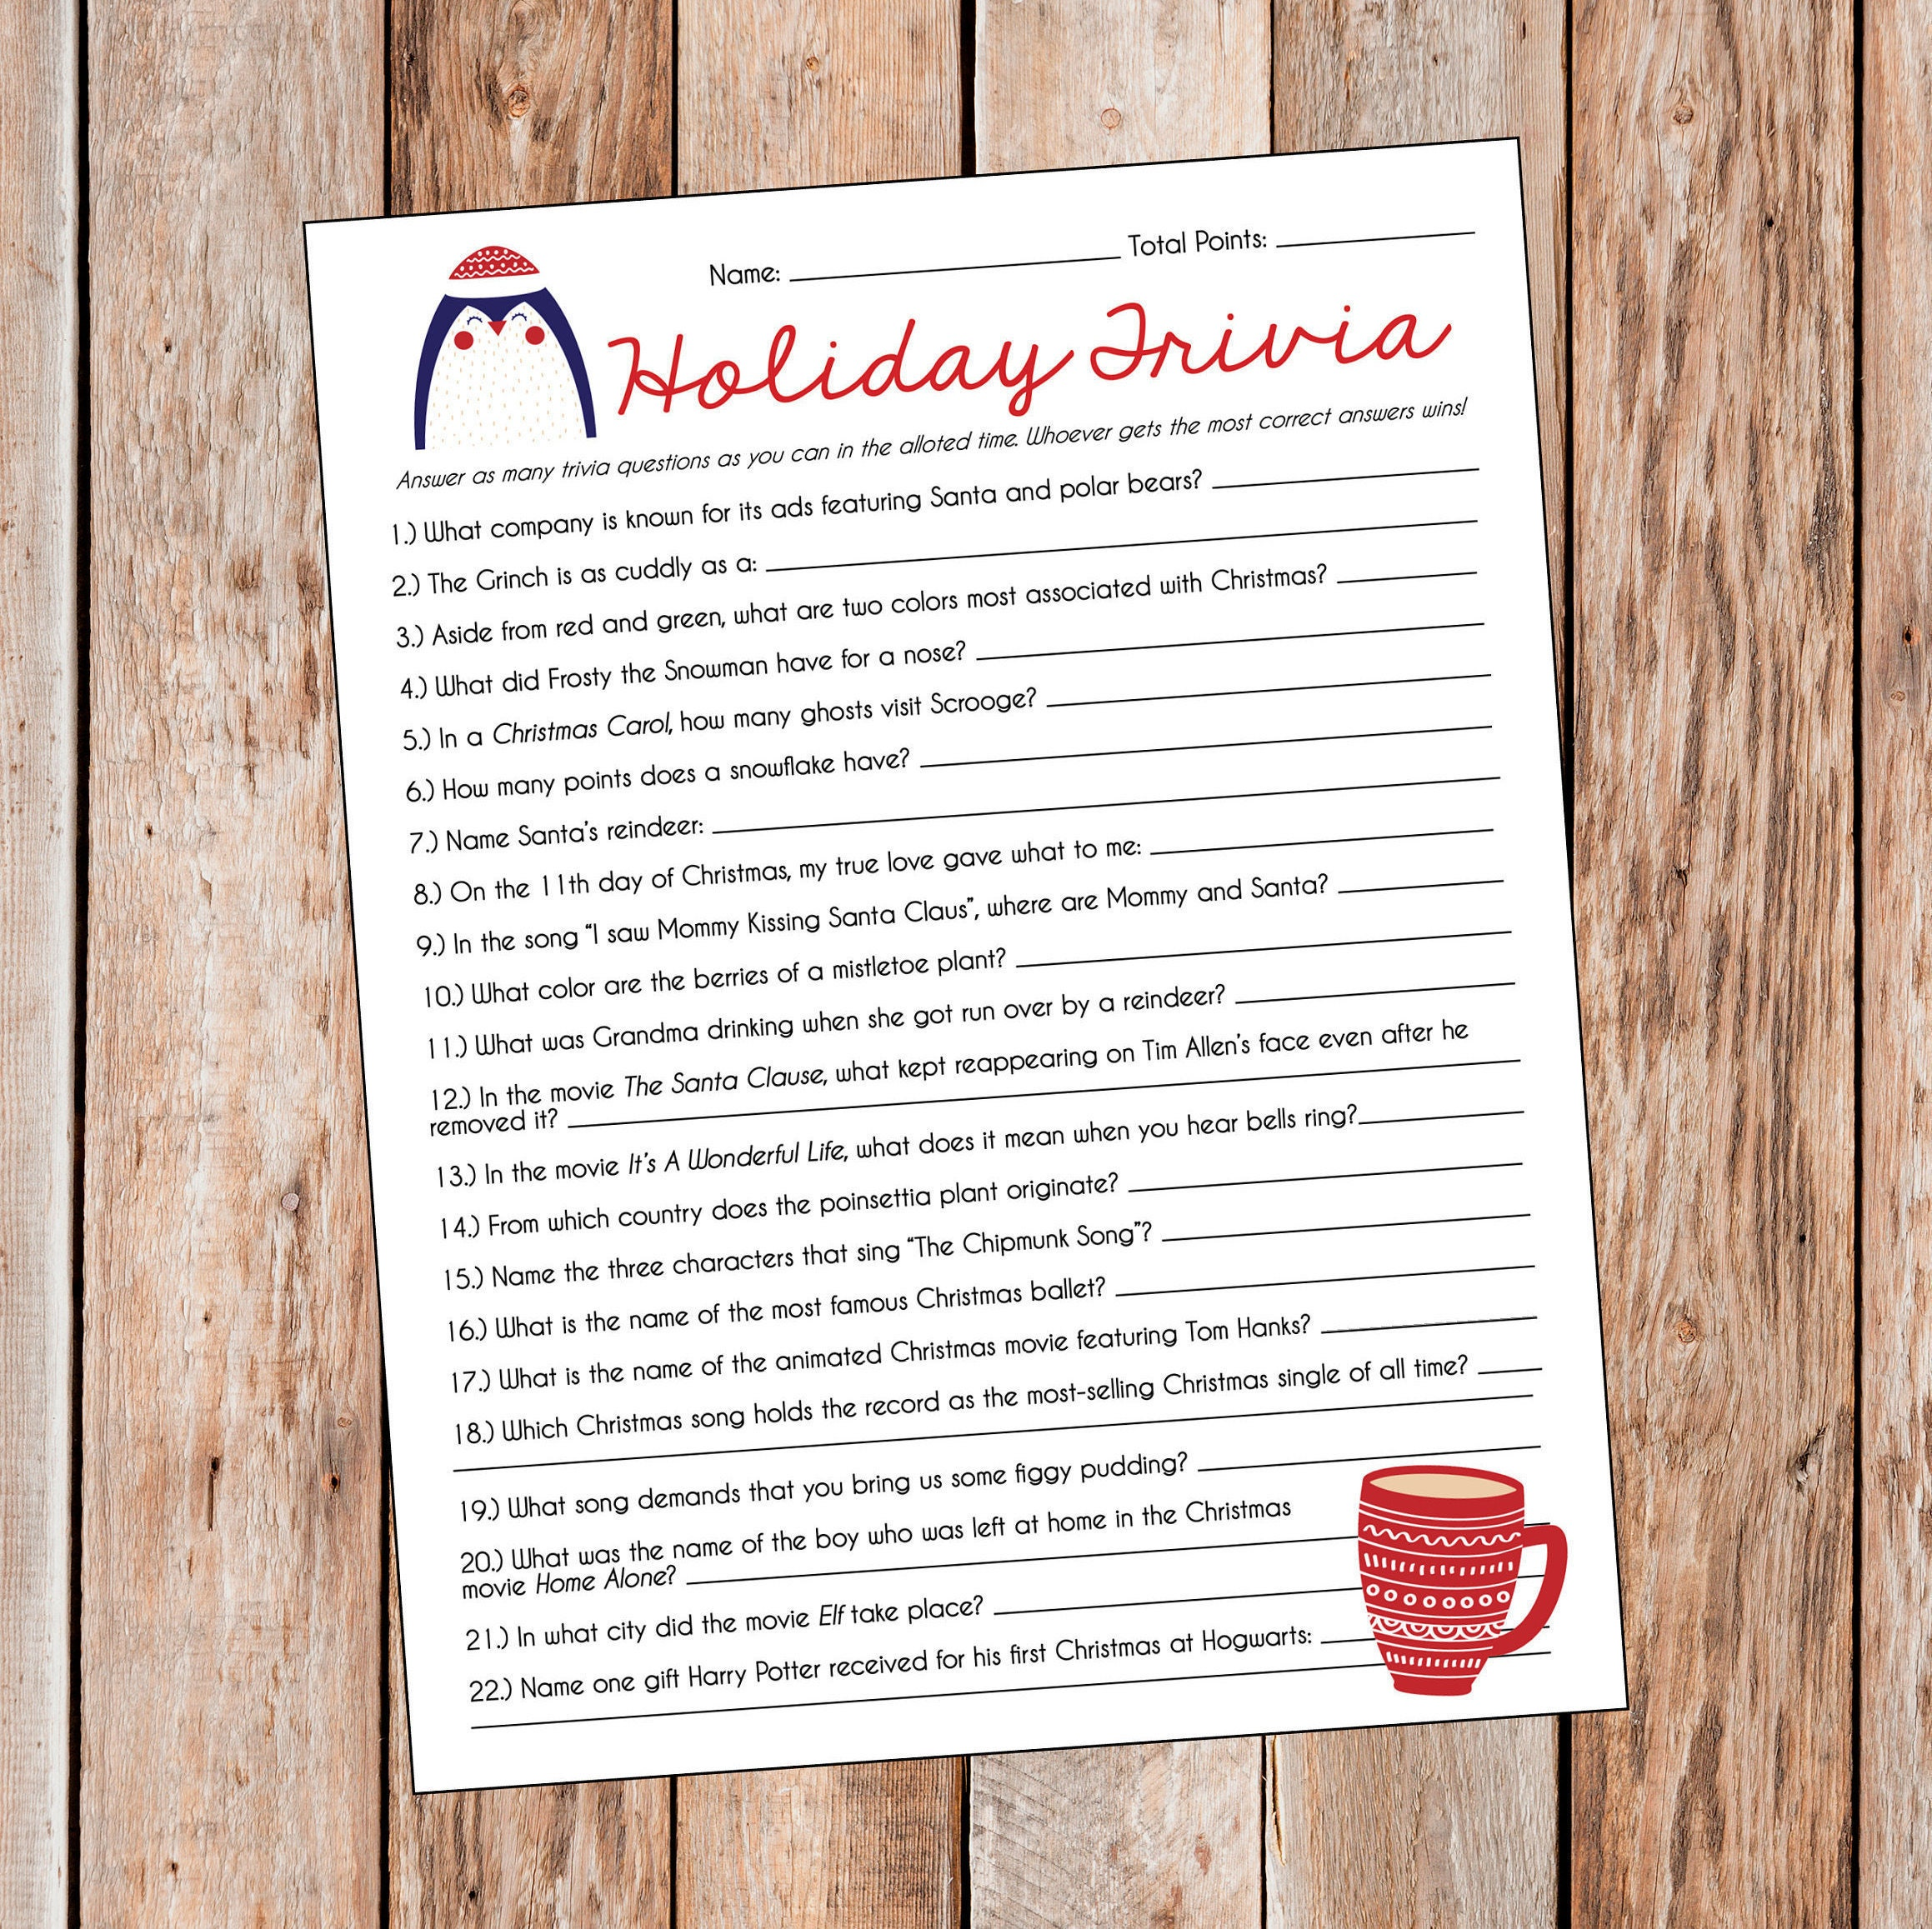 Fun Christmas Trivia Printable Christmas Trivia Questions Answers